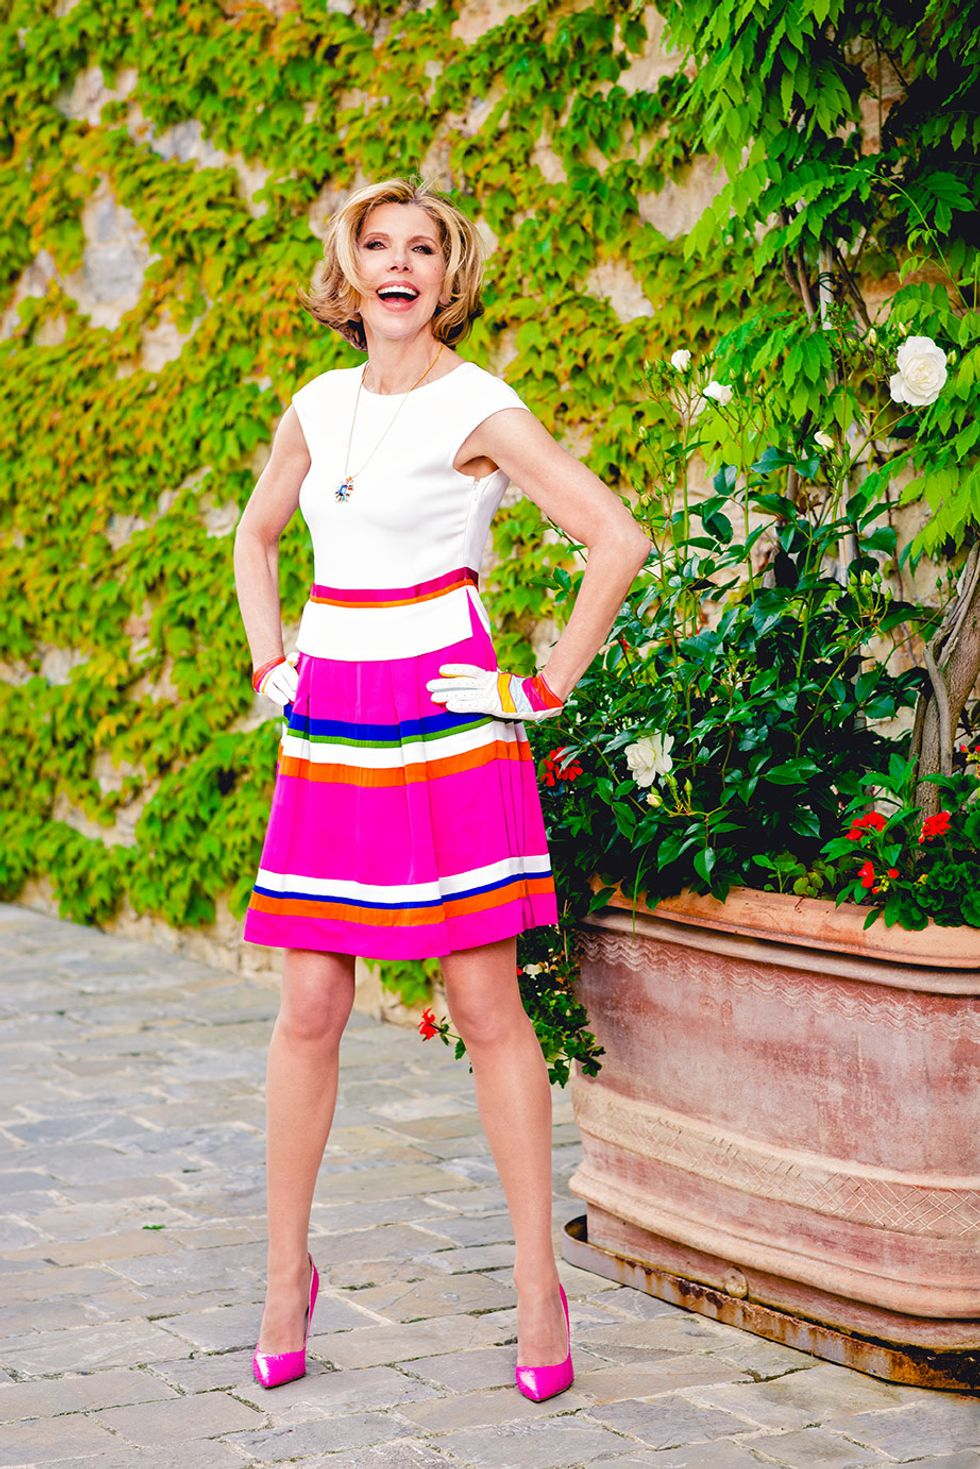 Christine Baranski of The Good Fight in a pink striped skirt and pink heels.